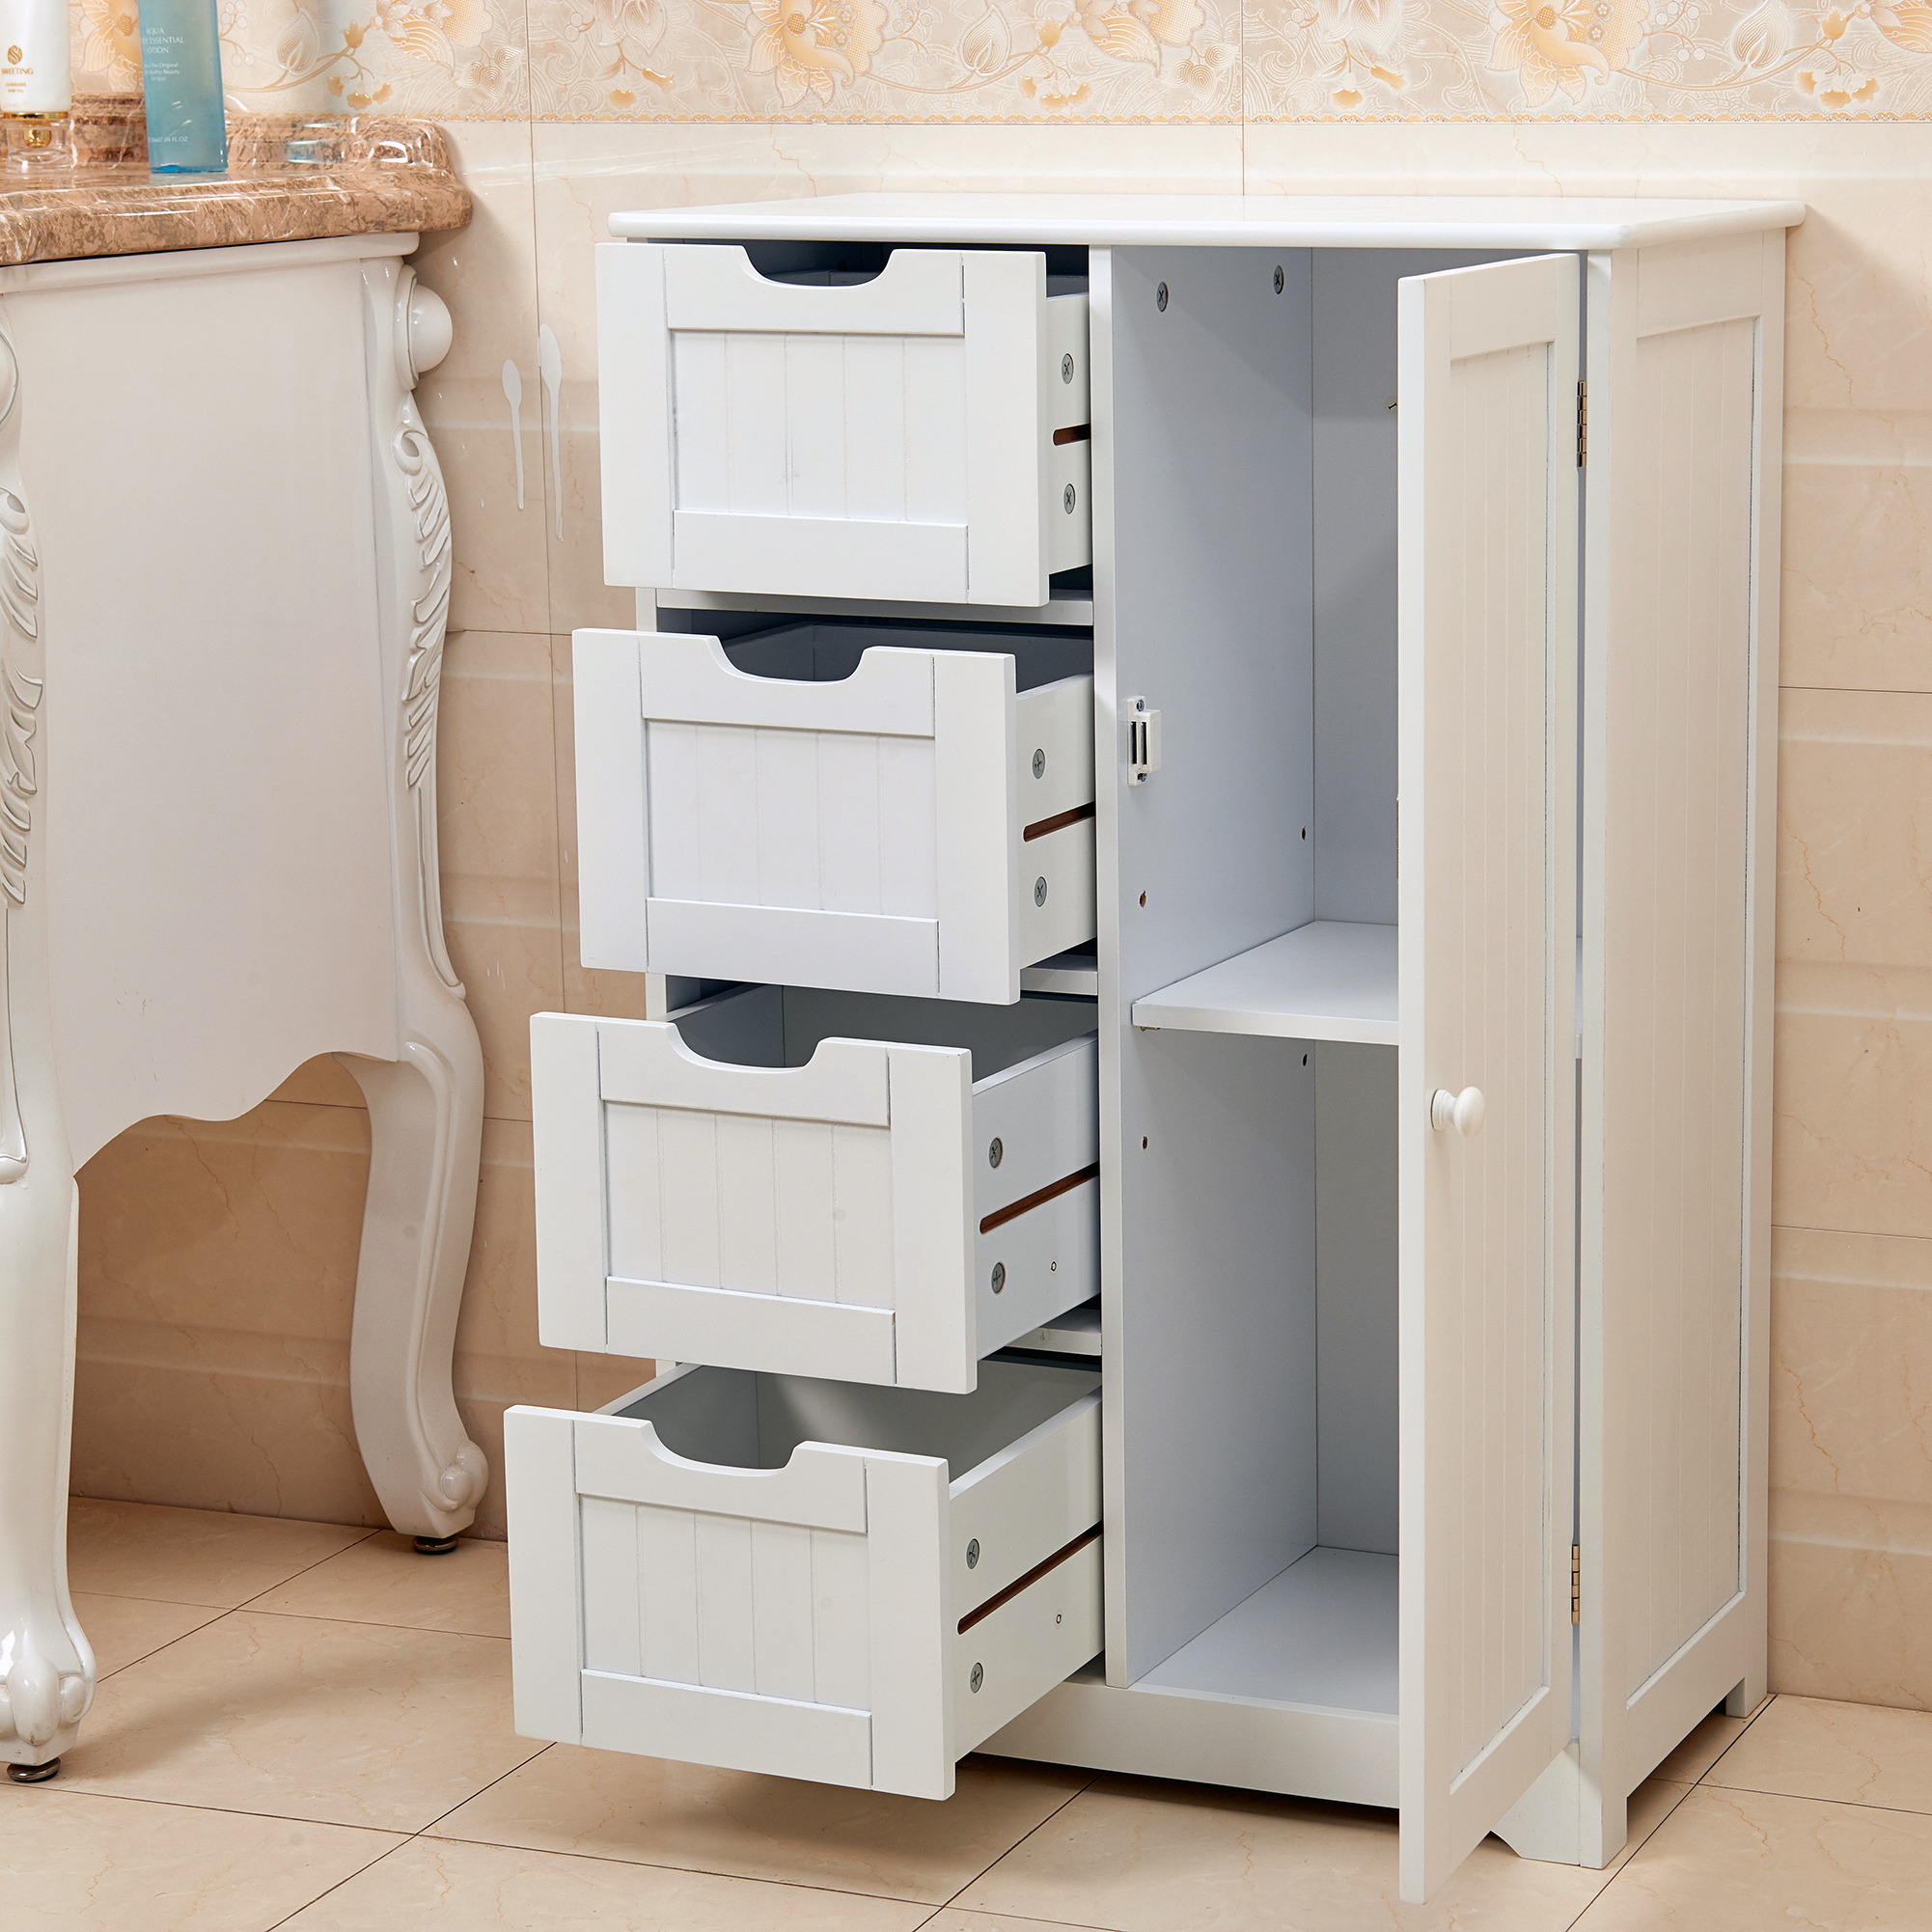 4 drawer bathroom cabinet white wooden 4 drawer bathroom storage cupboard cabinet 15307